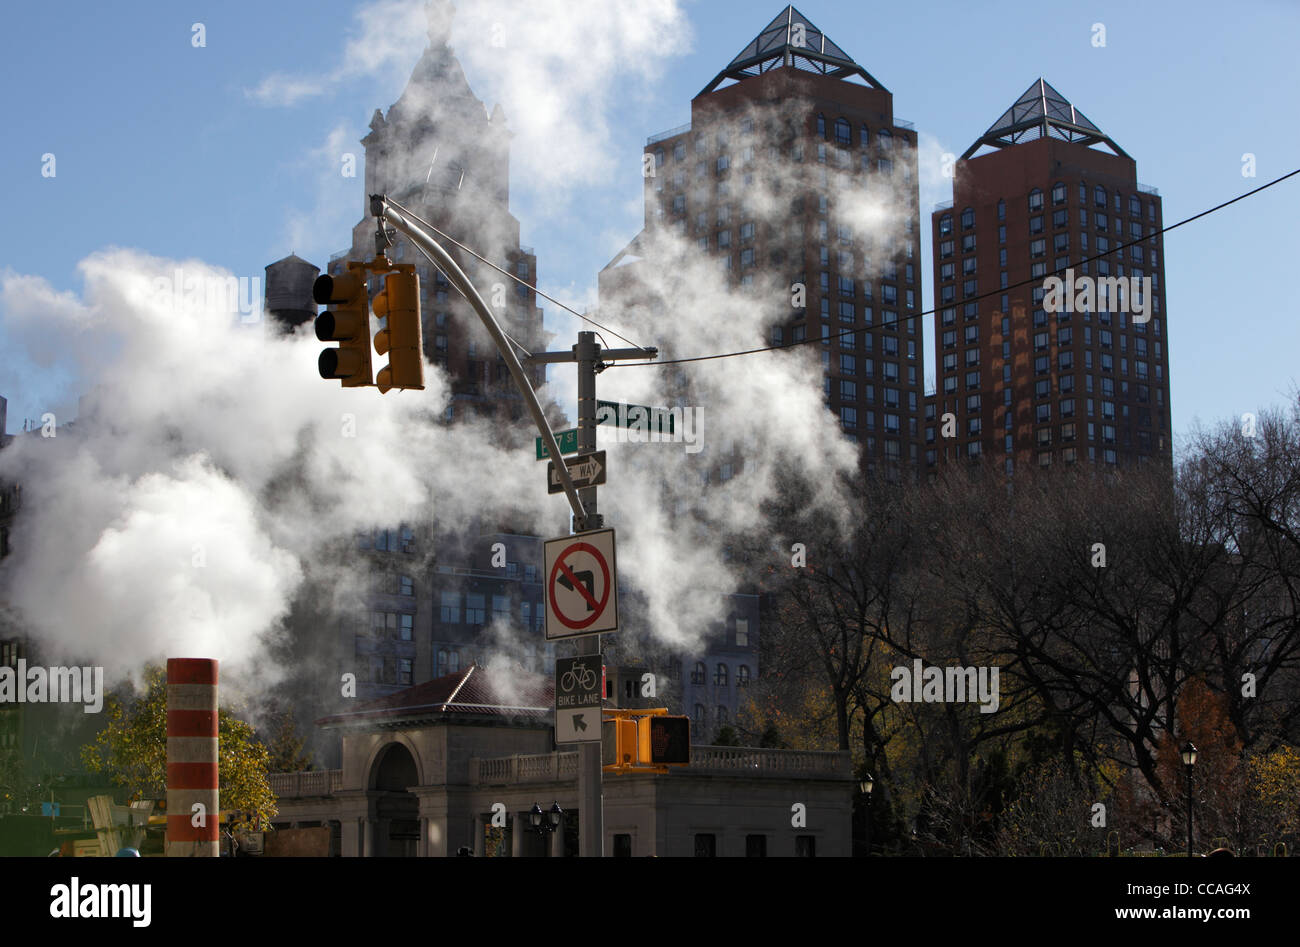 Steam pipe leaking steam at union square in New York City - Stock Image